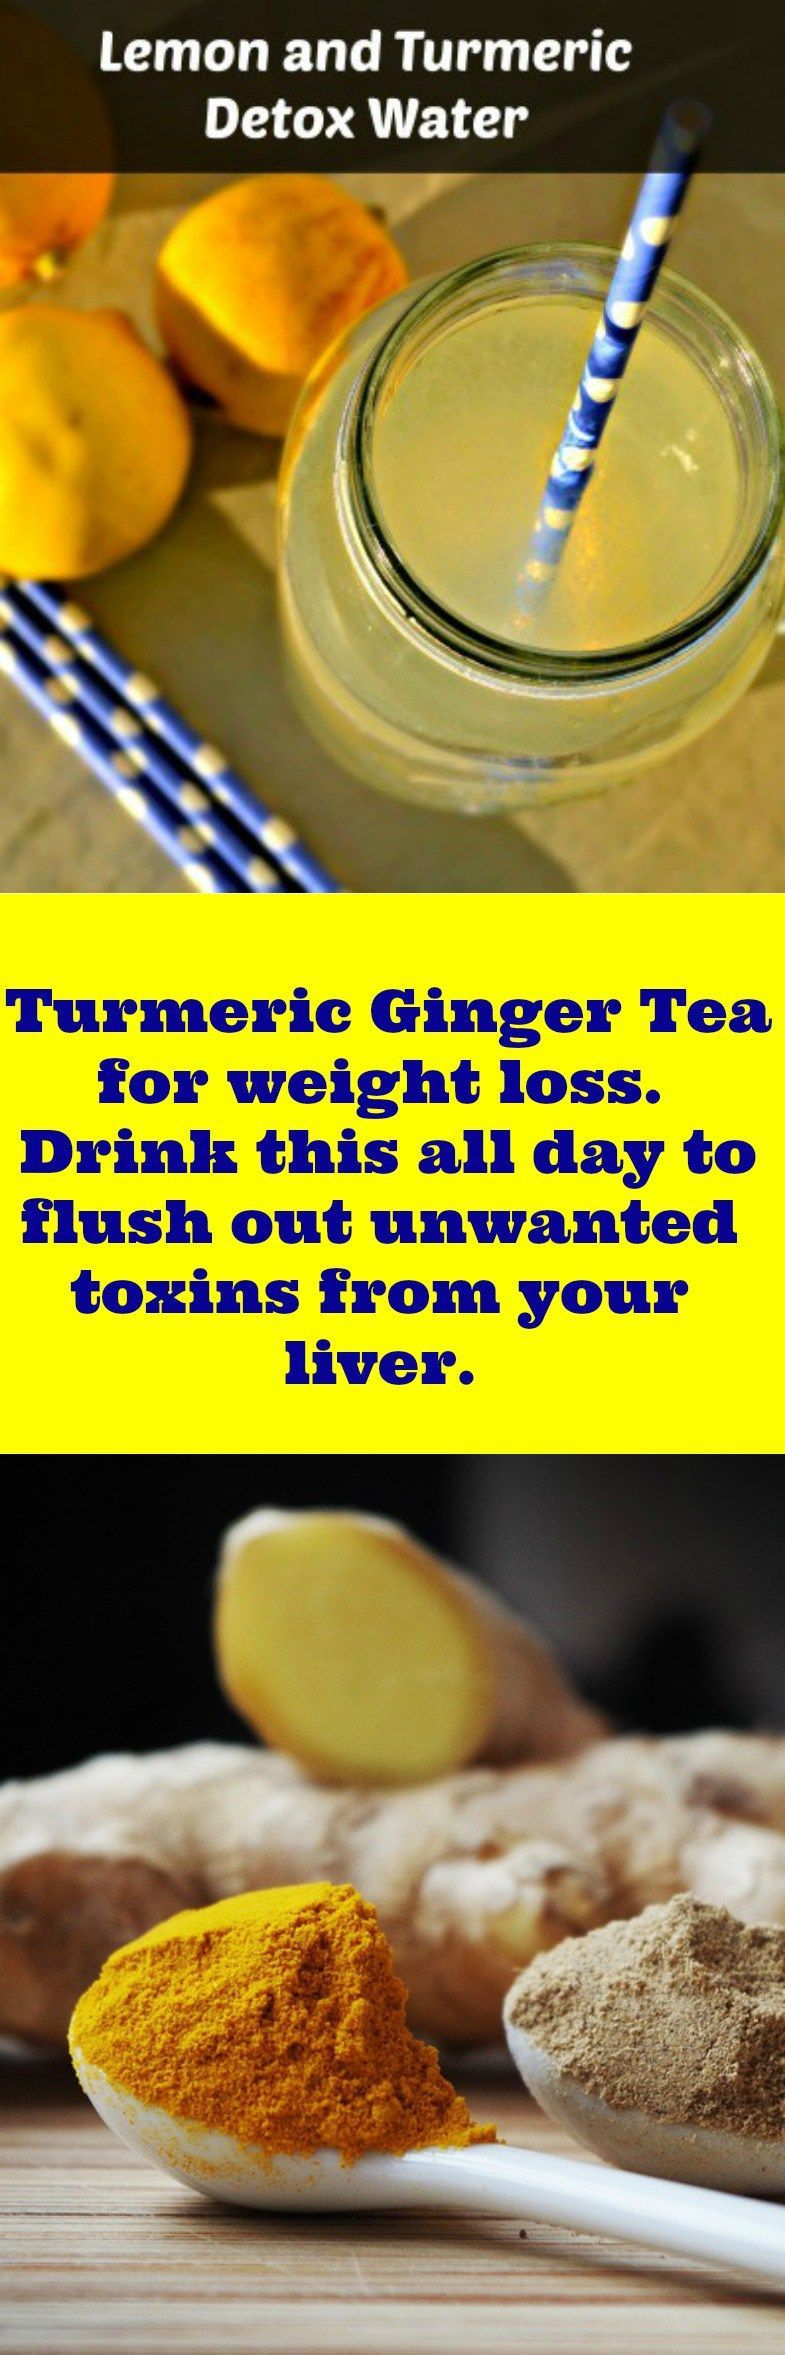 Turmeric Lemon Ginger Detox Water Turmeric Ginger Weight Loss